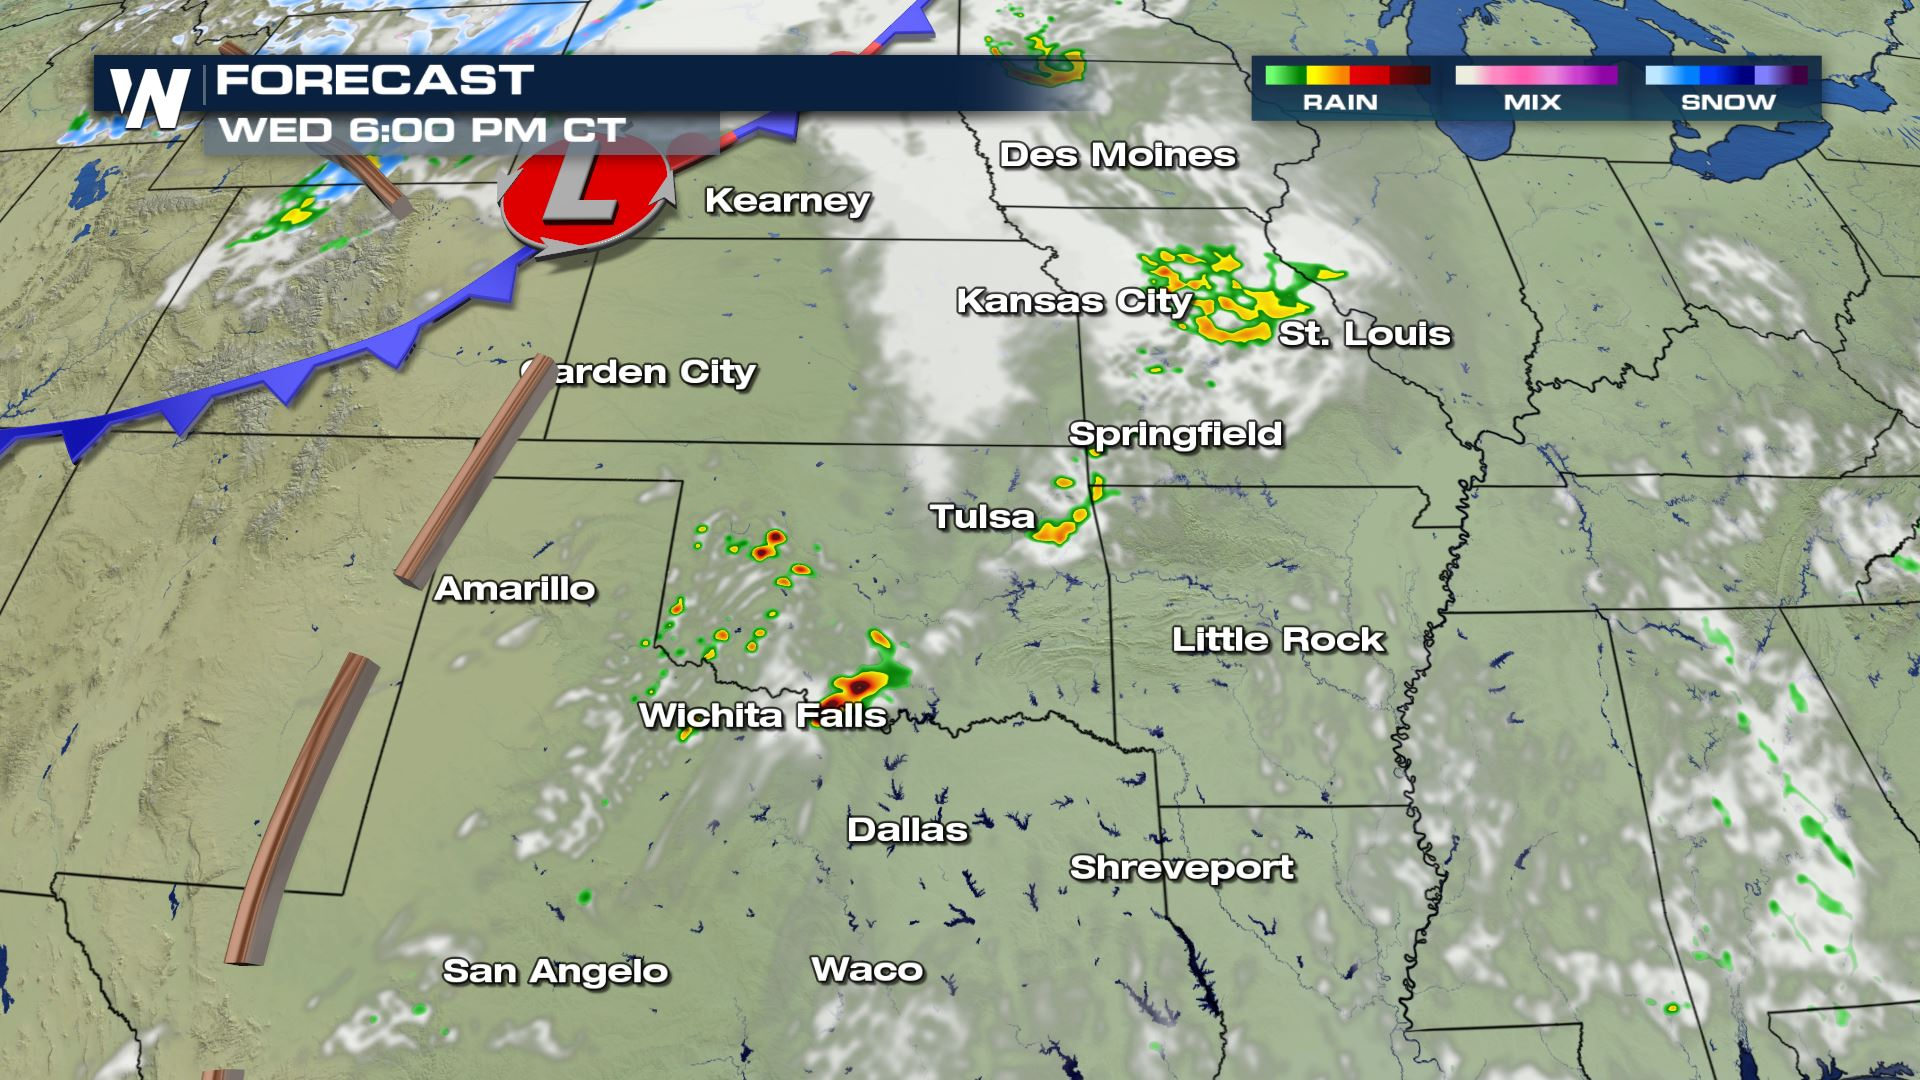 Southern Plains Severe Storm Risk Wednesday